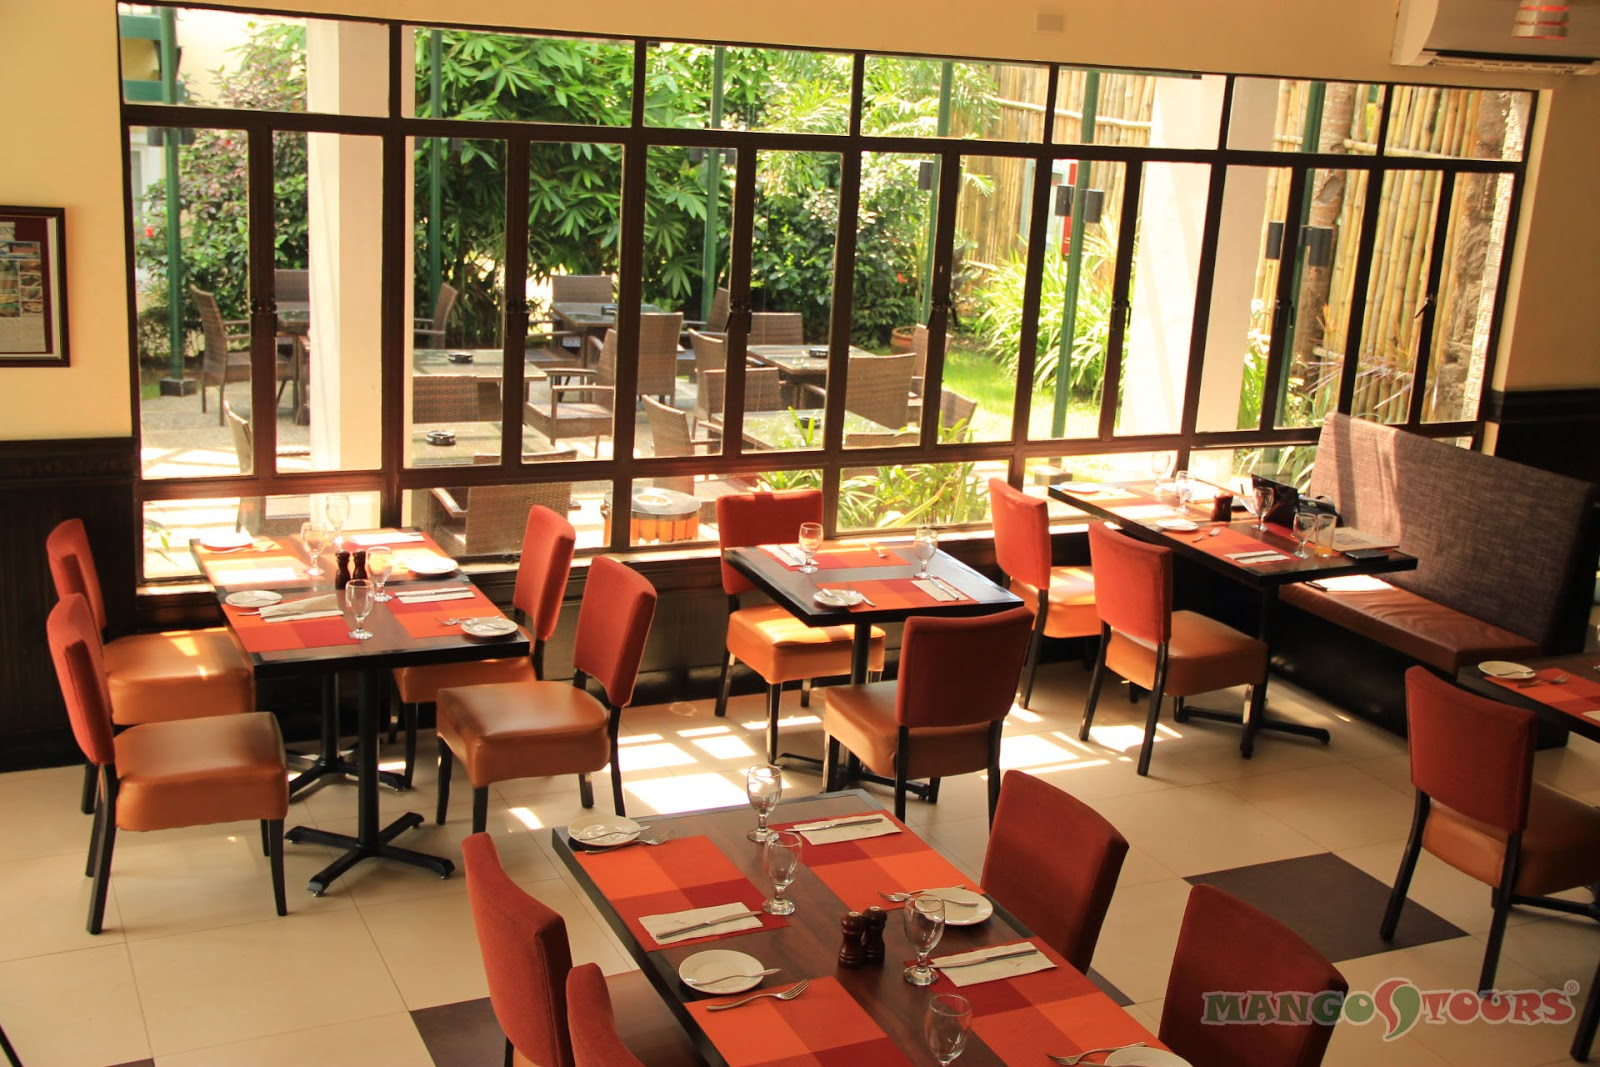 Mango Tours Microtel by Wyndham Sto. Tomas Batangas Millie's Restaurant indoor dining